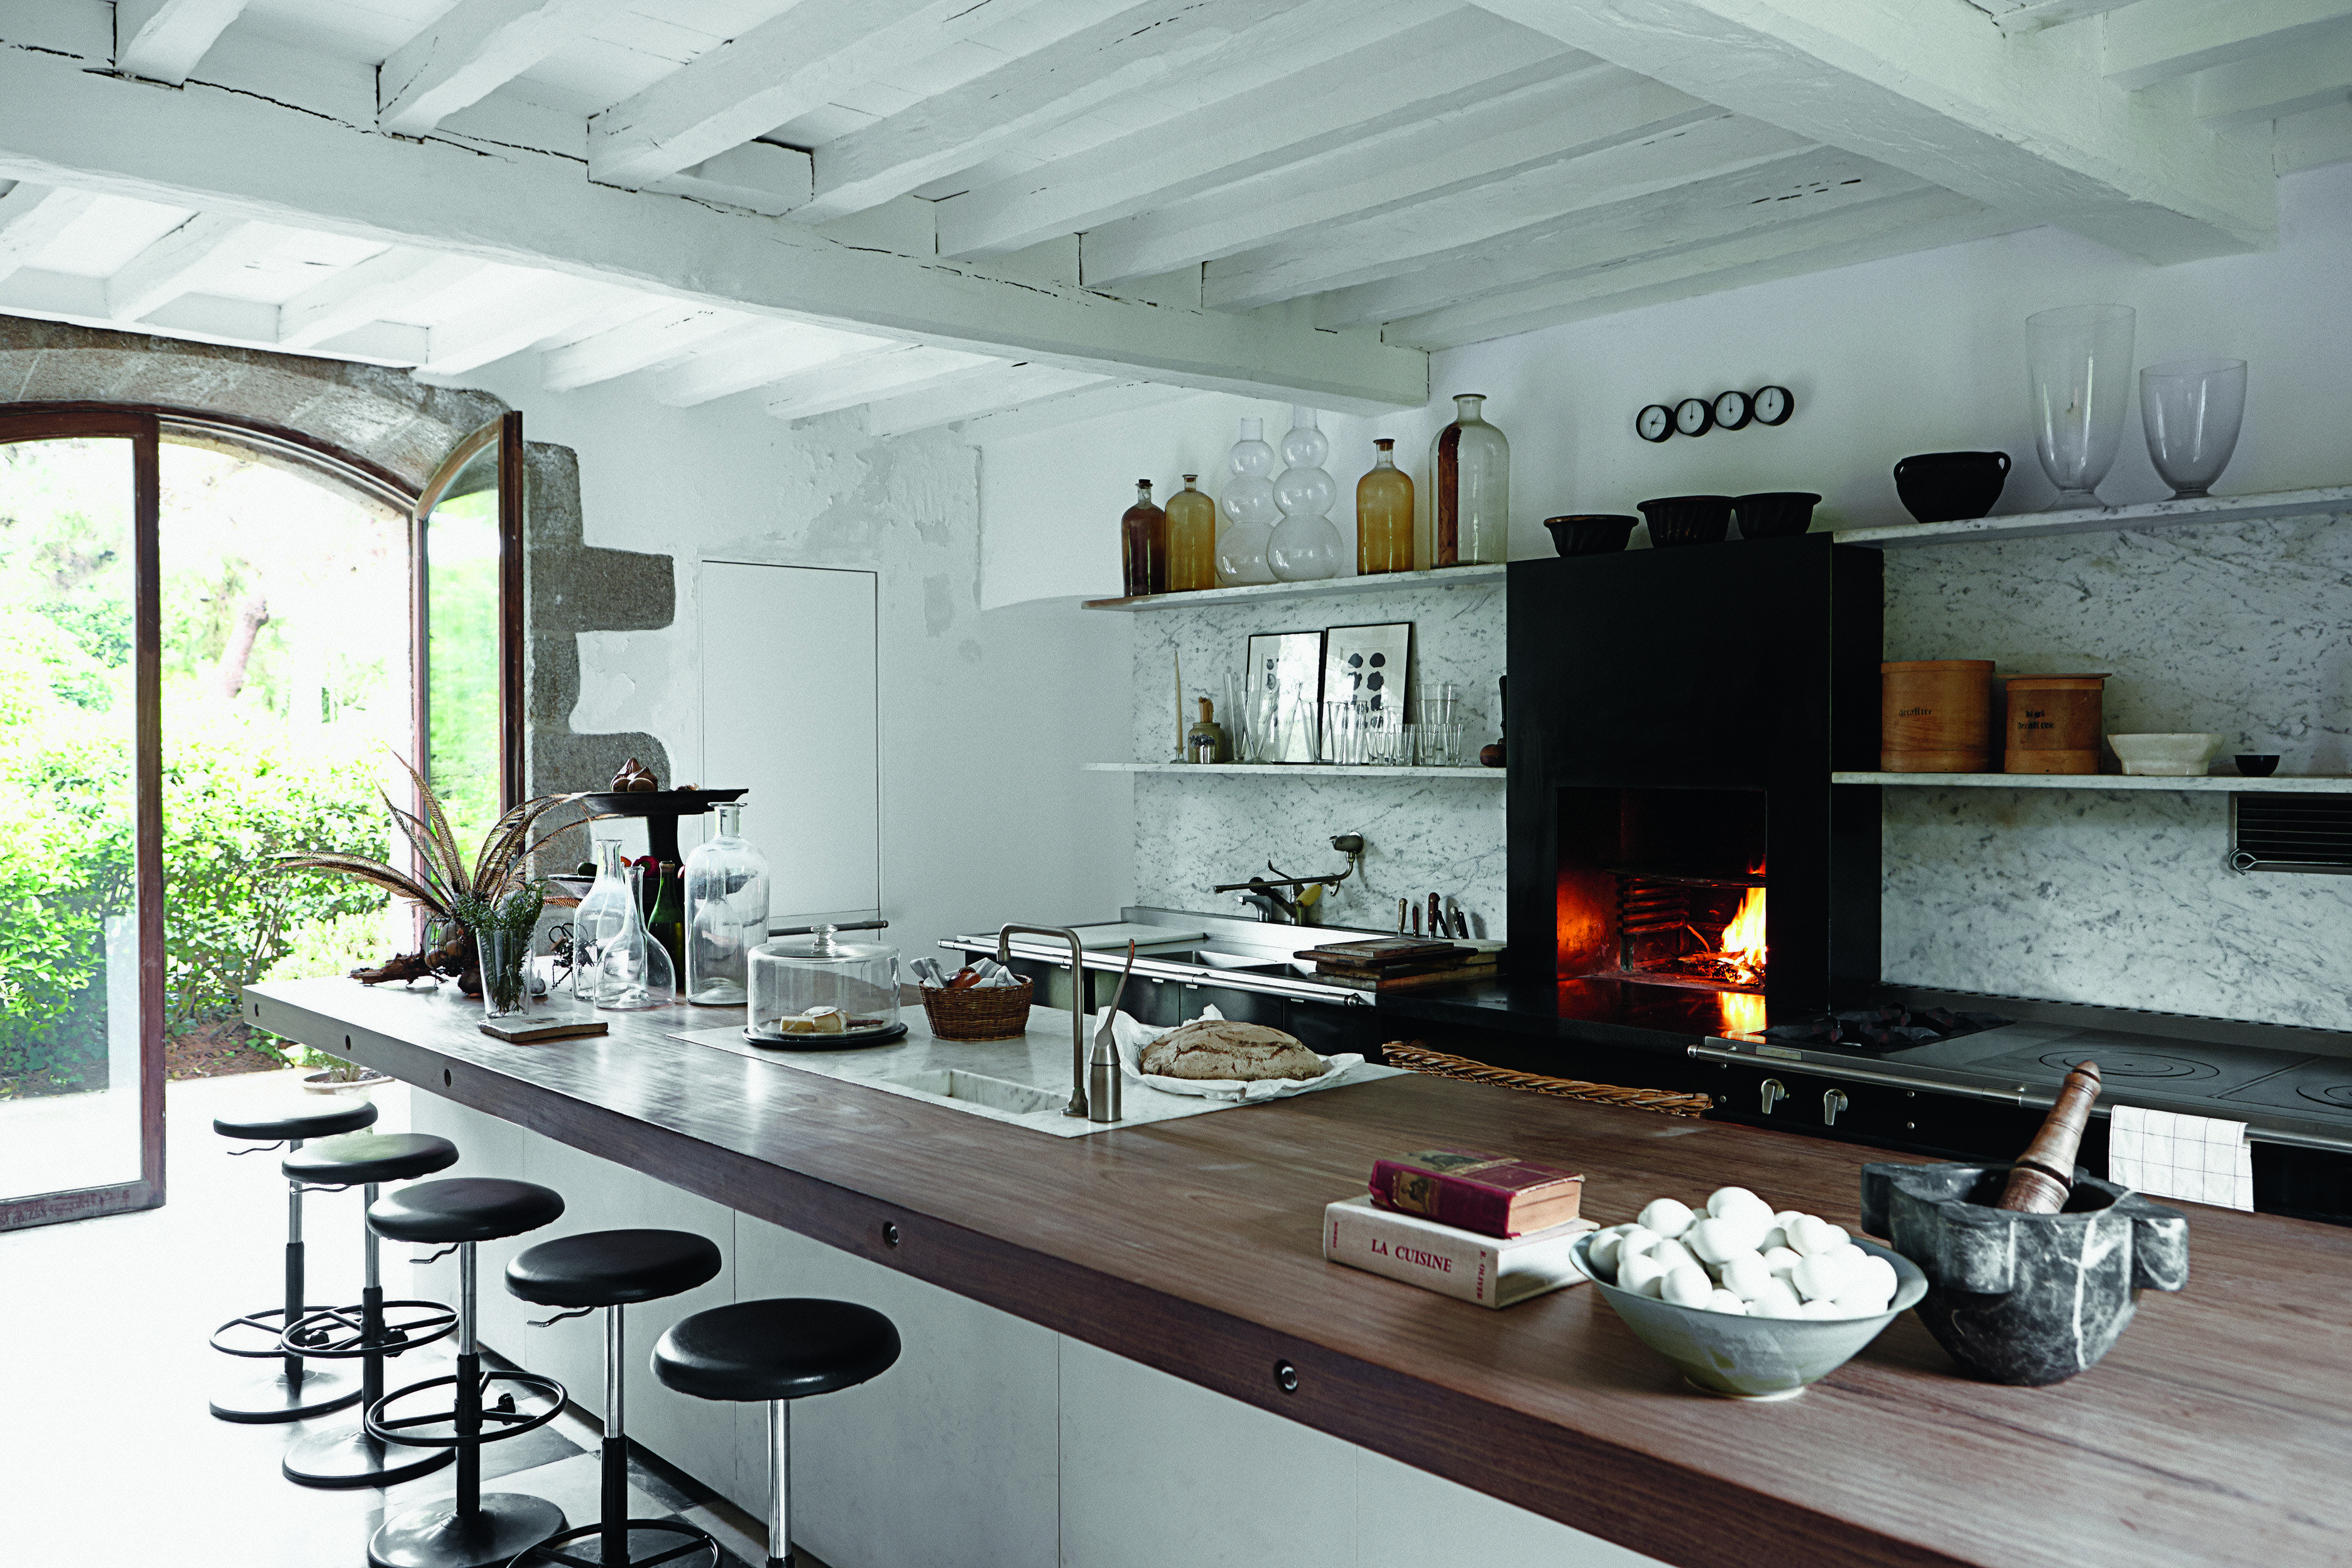 Elegant Interiors By Axel Vervoordt - Architectural Digest Rustic Kitchen